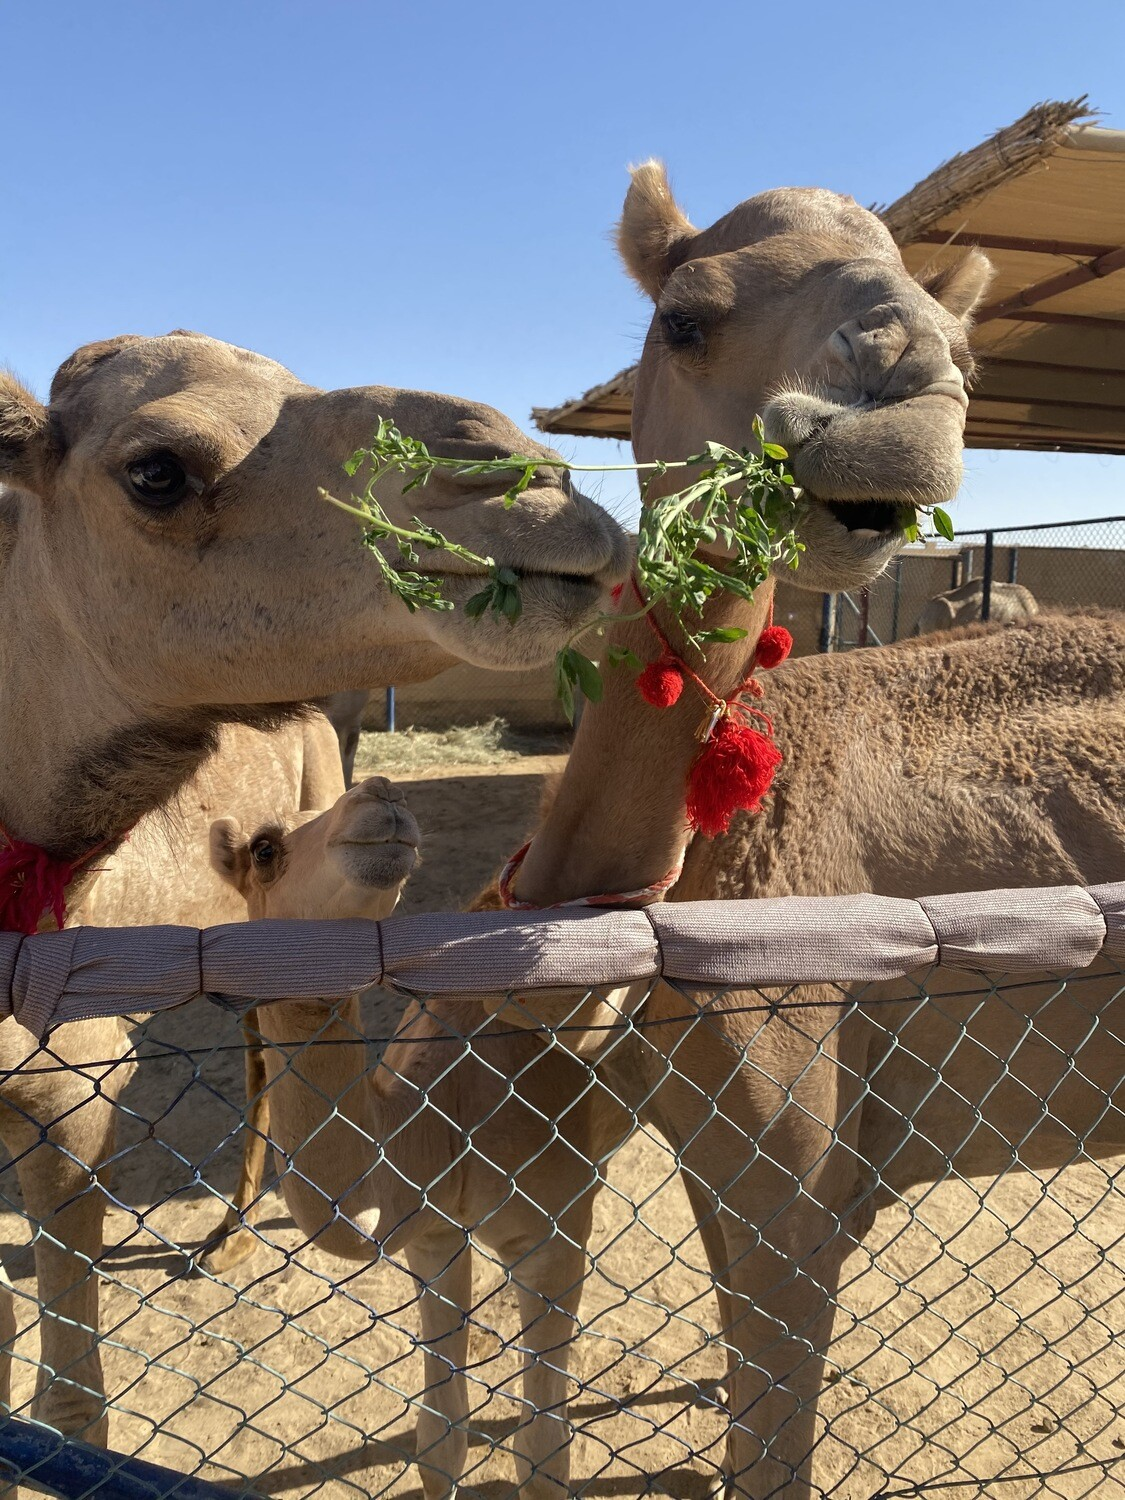 THE CAMEL FARM & EVENING DESERT SAFARI   220 AED